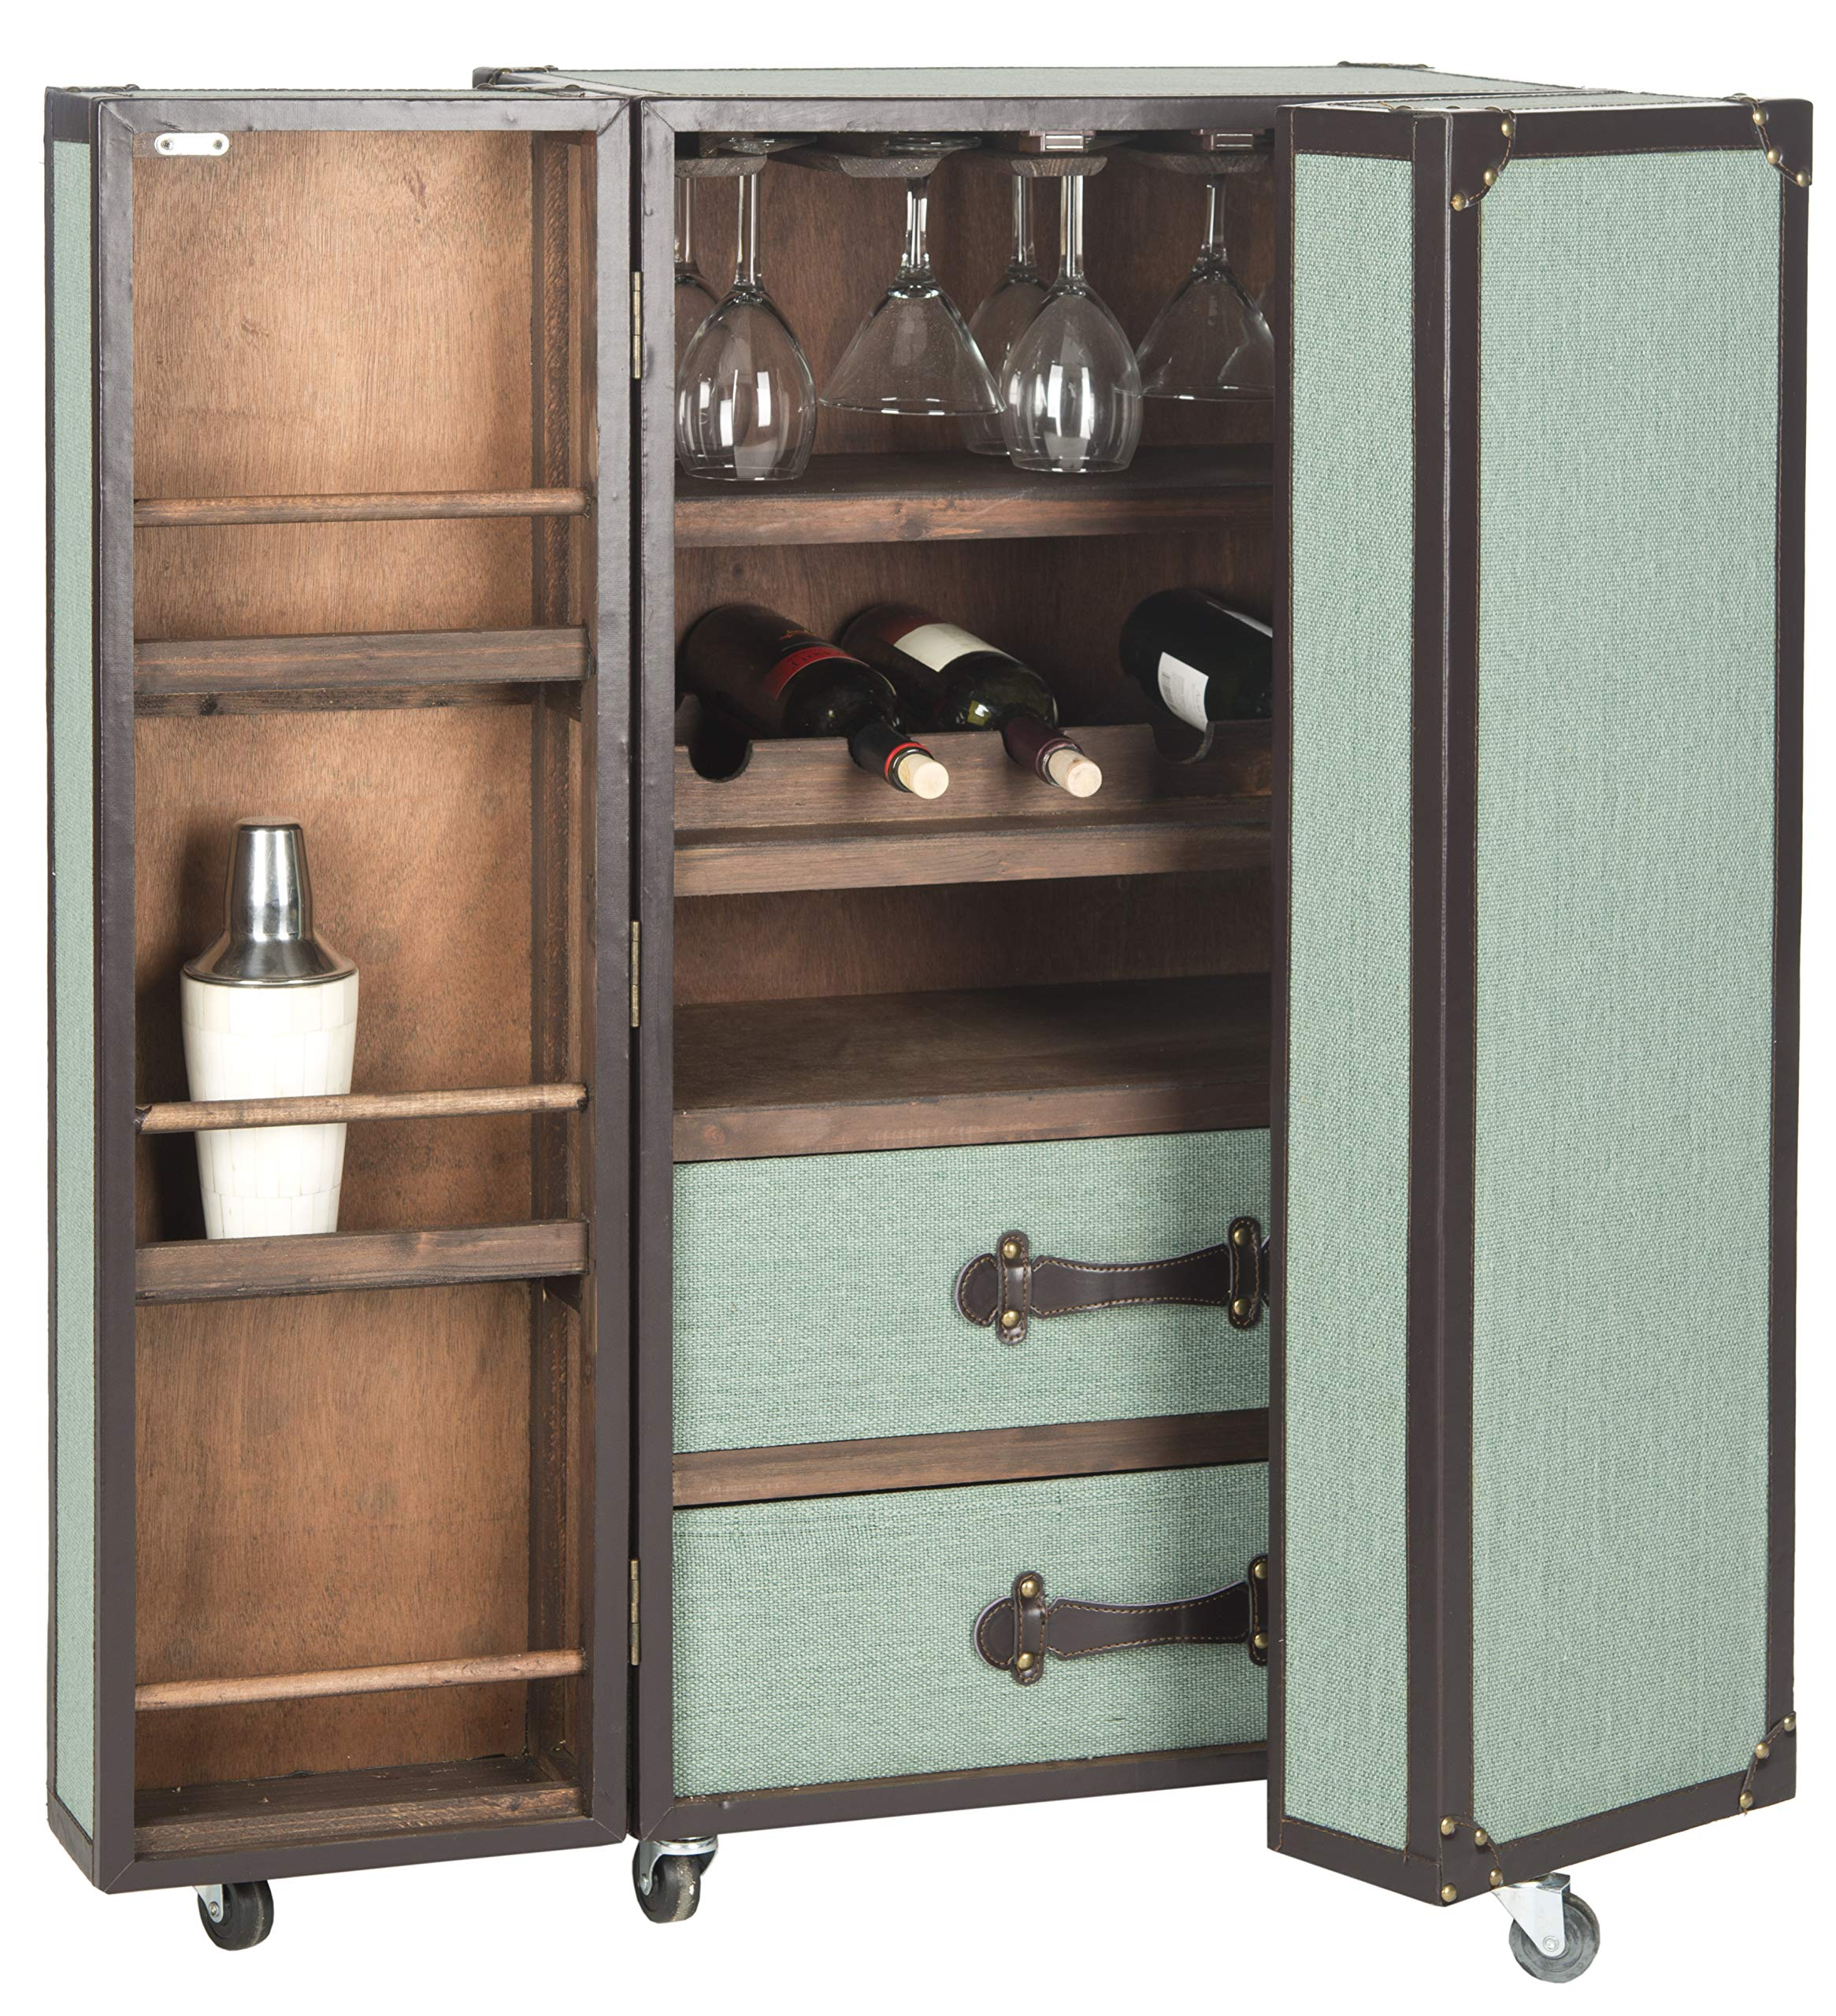 Safavieh Home Collection Sage Bar Cabinet by Safavieh